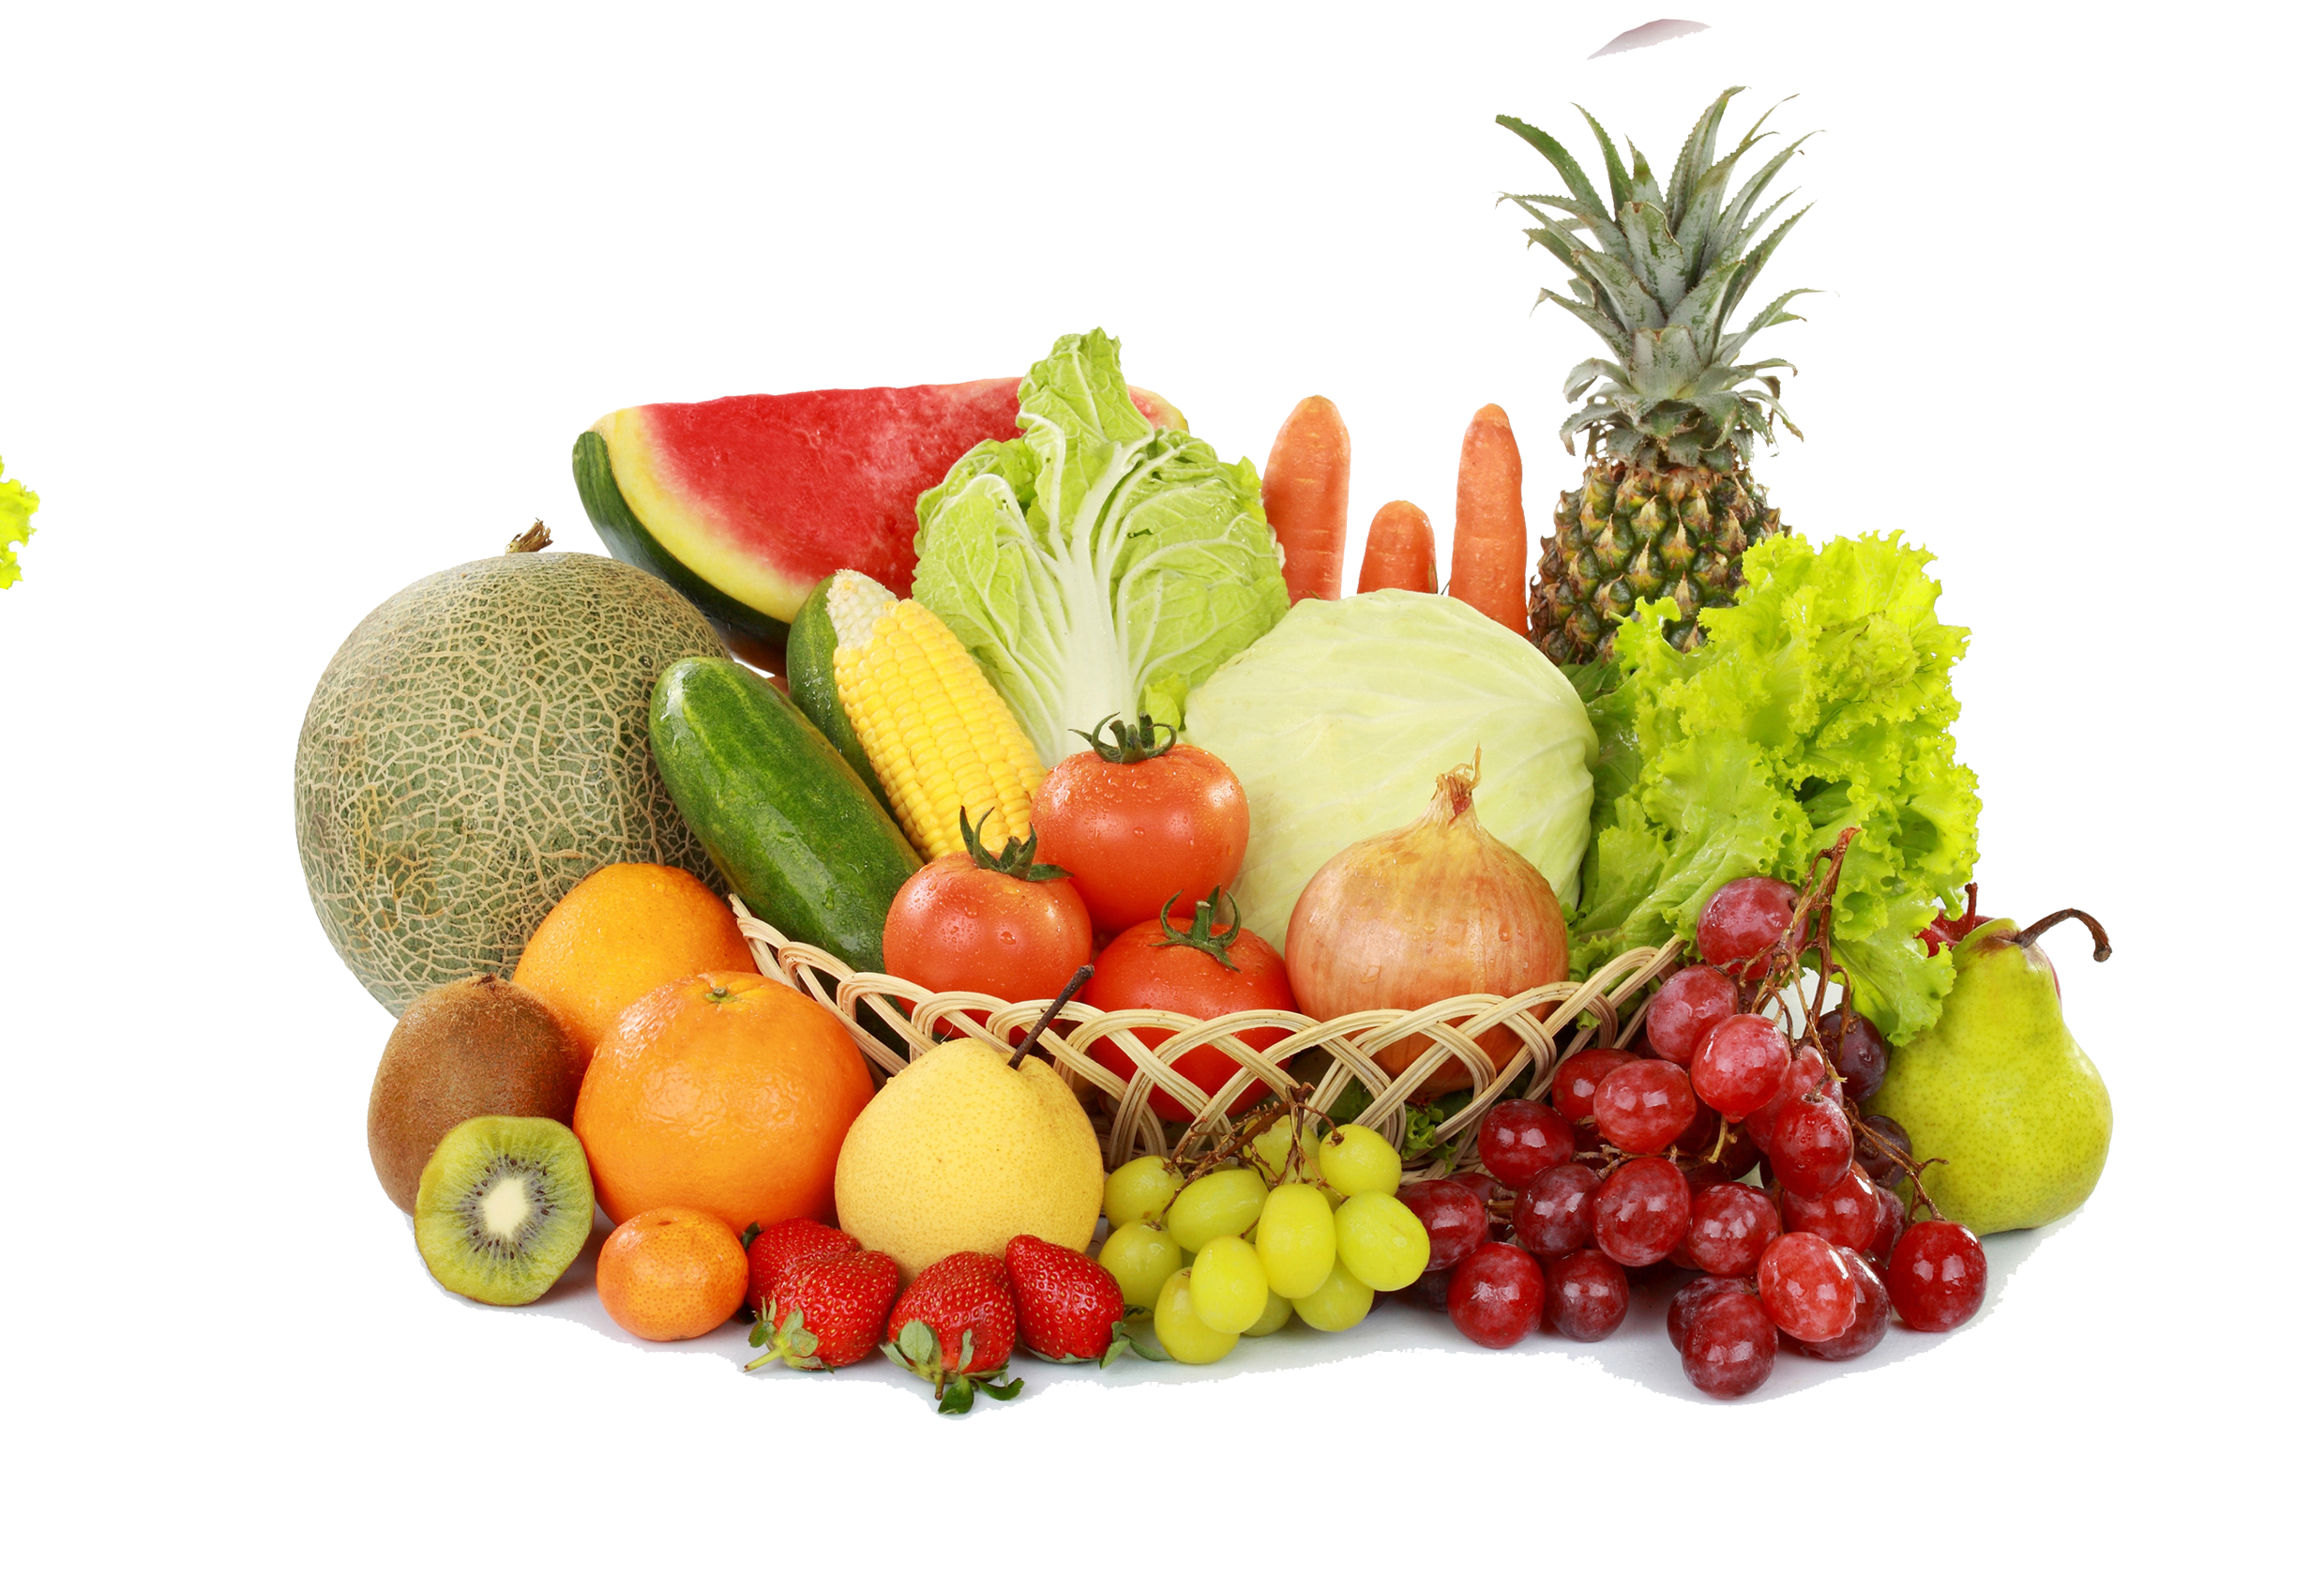 Mix Fruit PNG Image Transparent Background.